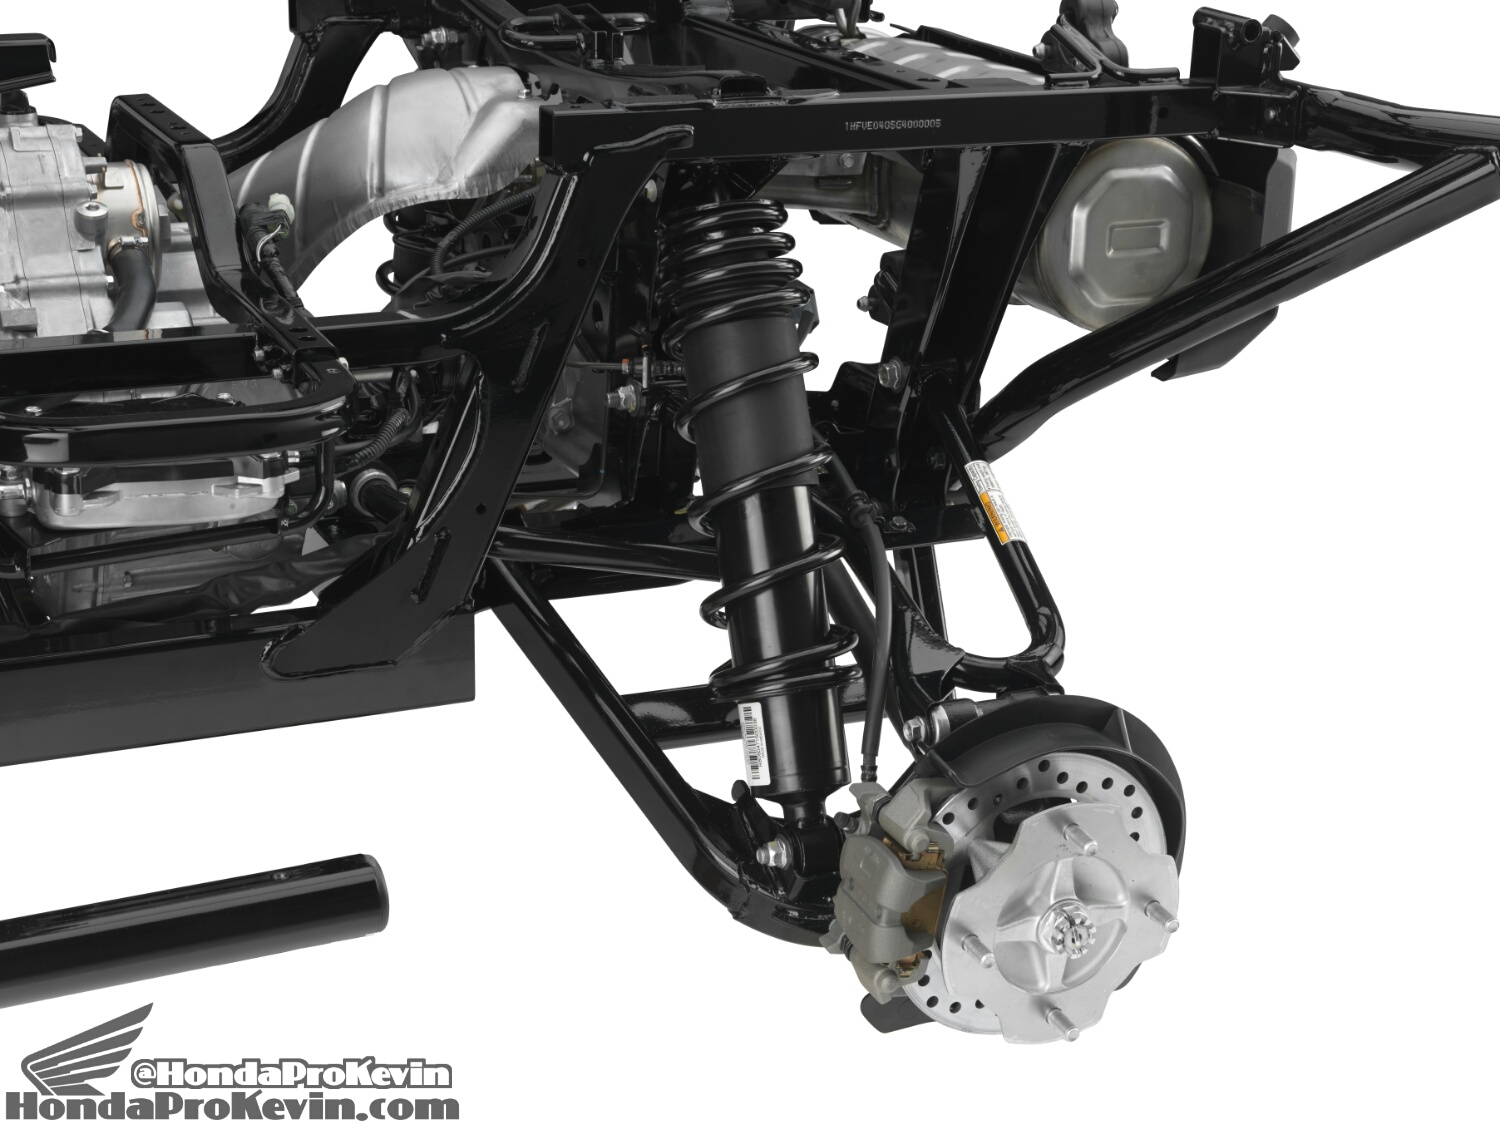 Detailed 2016 Honda Pioneer 1000 & 1000-5 Suspension / Frame Pictures - Photo Gallery - SxS / UTV / Side by Side ATV - SXS1000 - SXS1000M3 - SXS1000M5